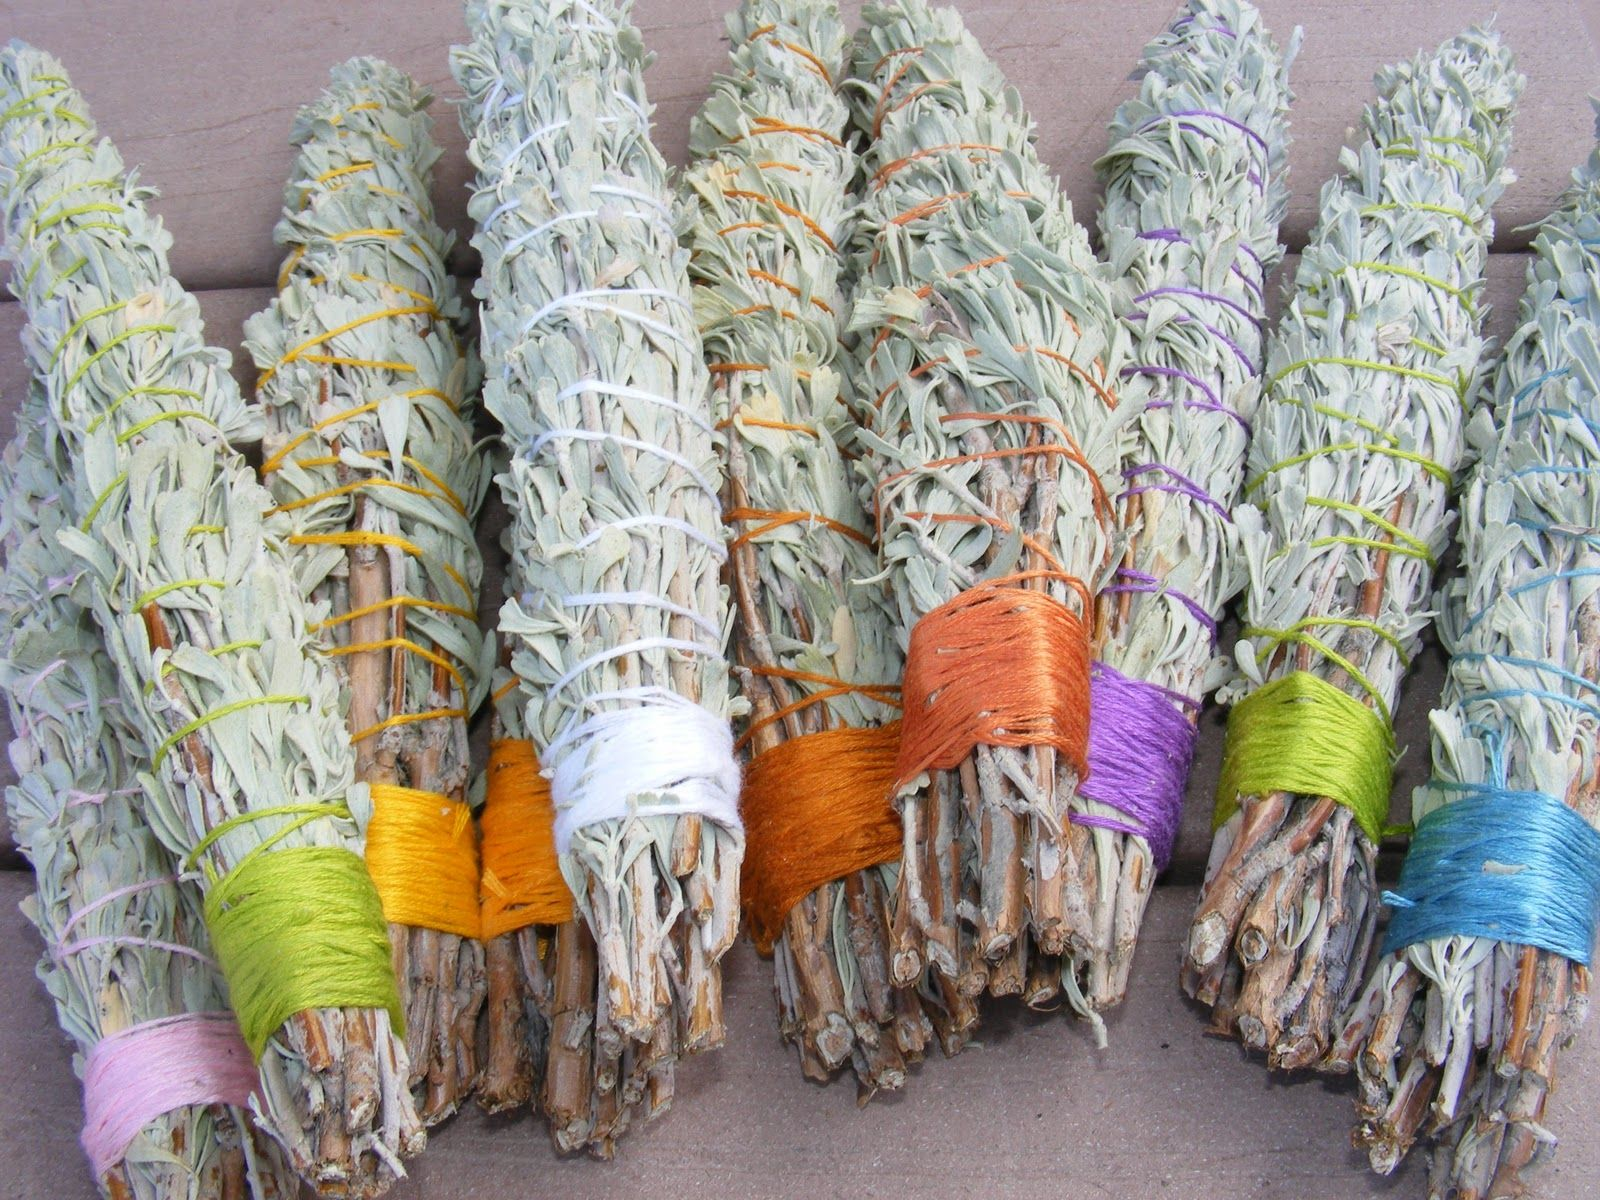 045 Jpg 1 600 1 200 Pixels Smudge Sticks Smudging Crafts